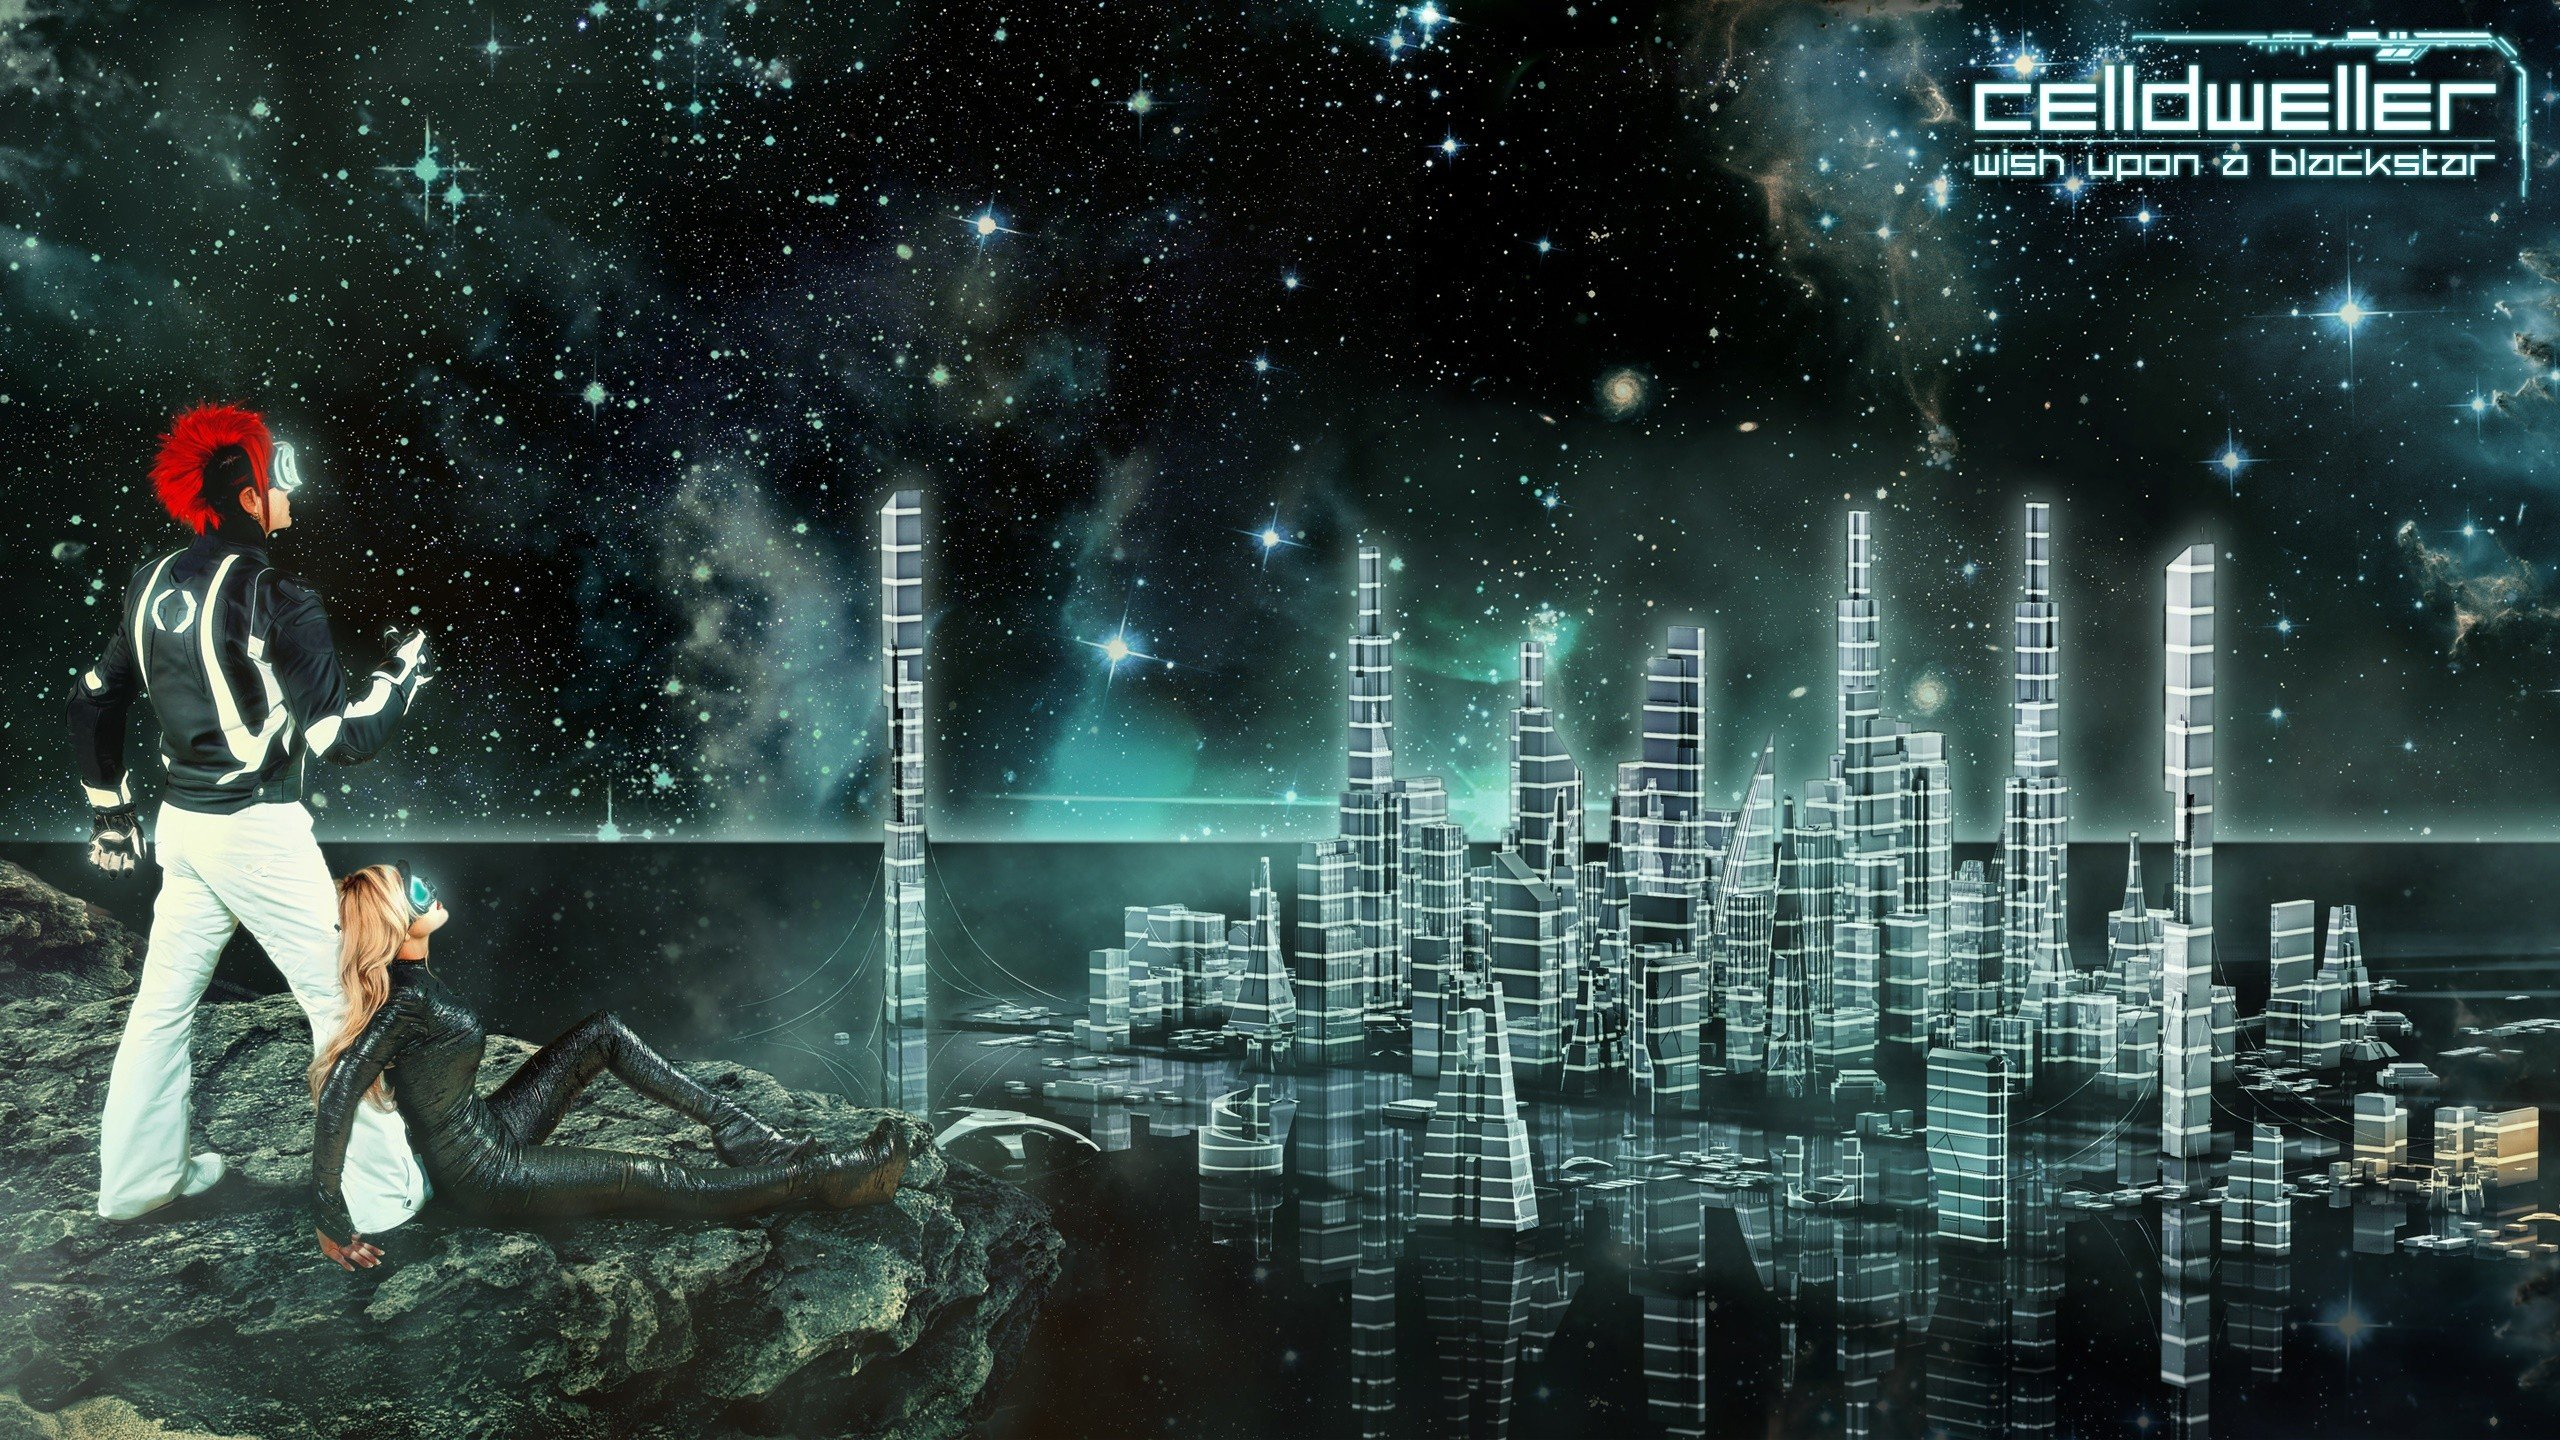 Klayton City Space Science Fiction Wish Upon A Blackstar Hd Wallpapers Desktop And Mobile Images Photos